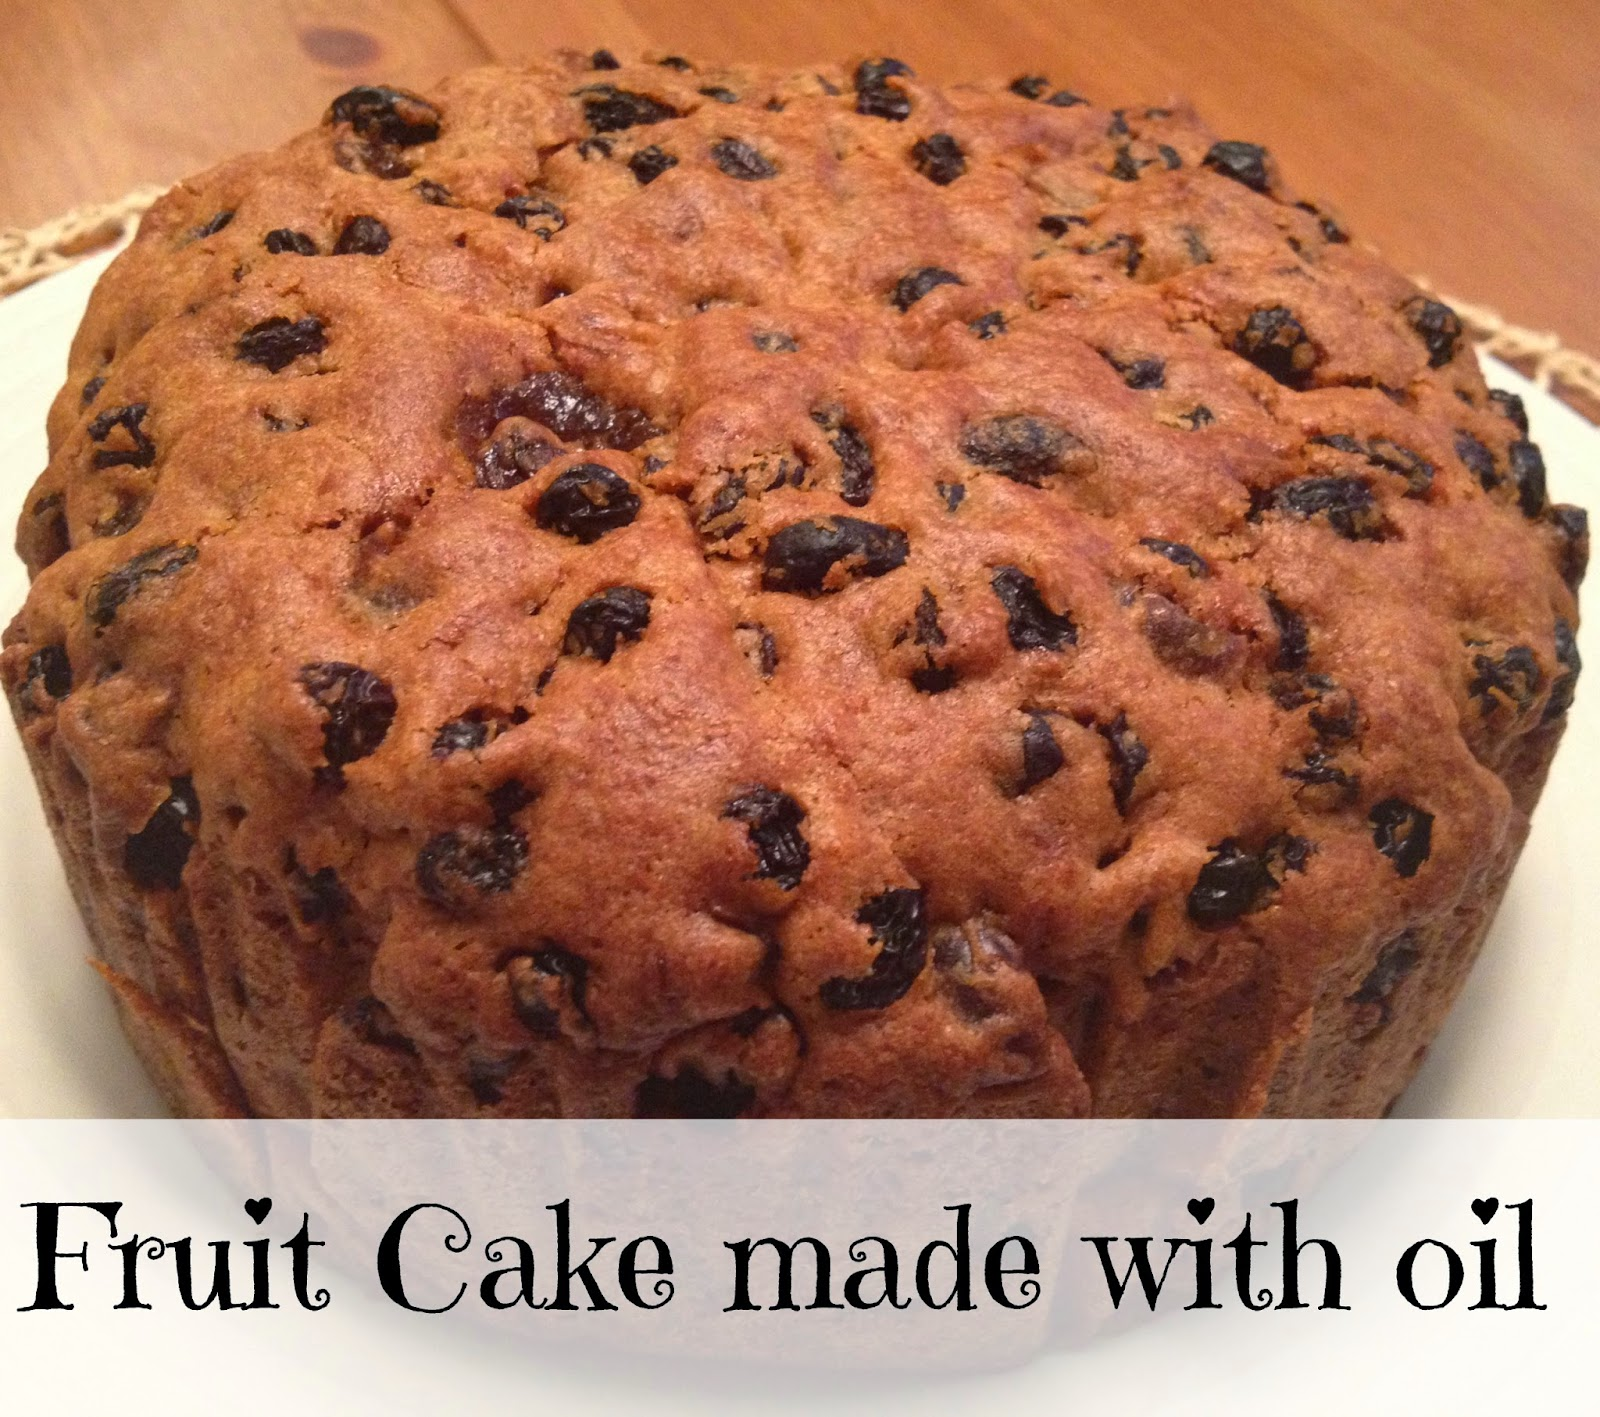 Fruit Cake Recipe Made With Oil